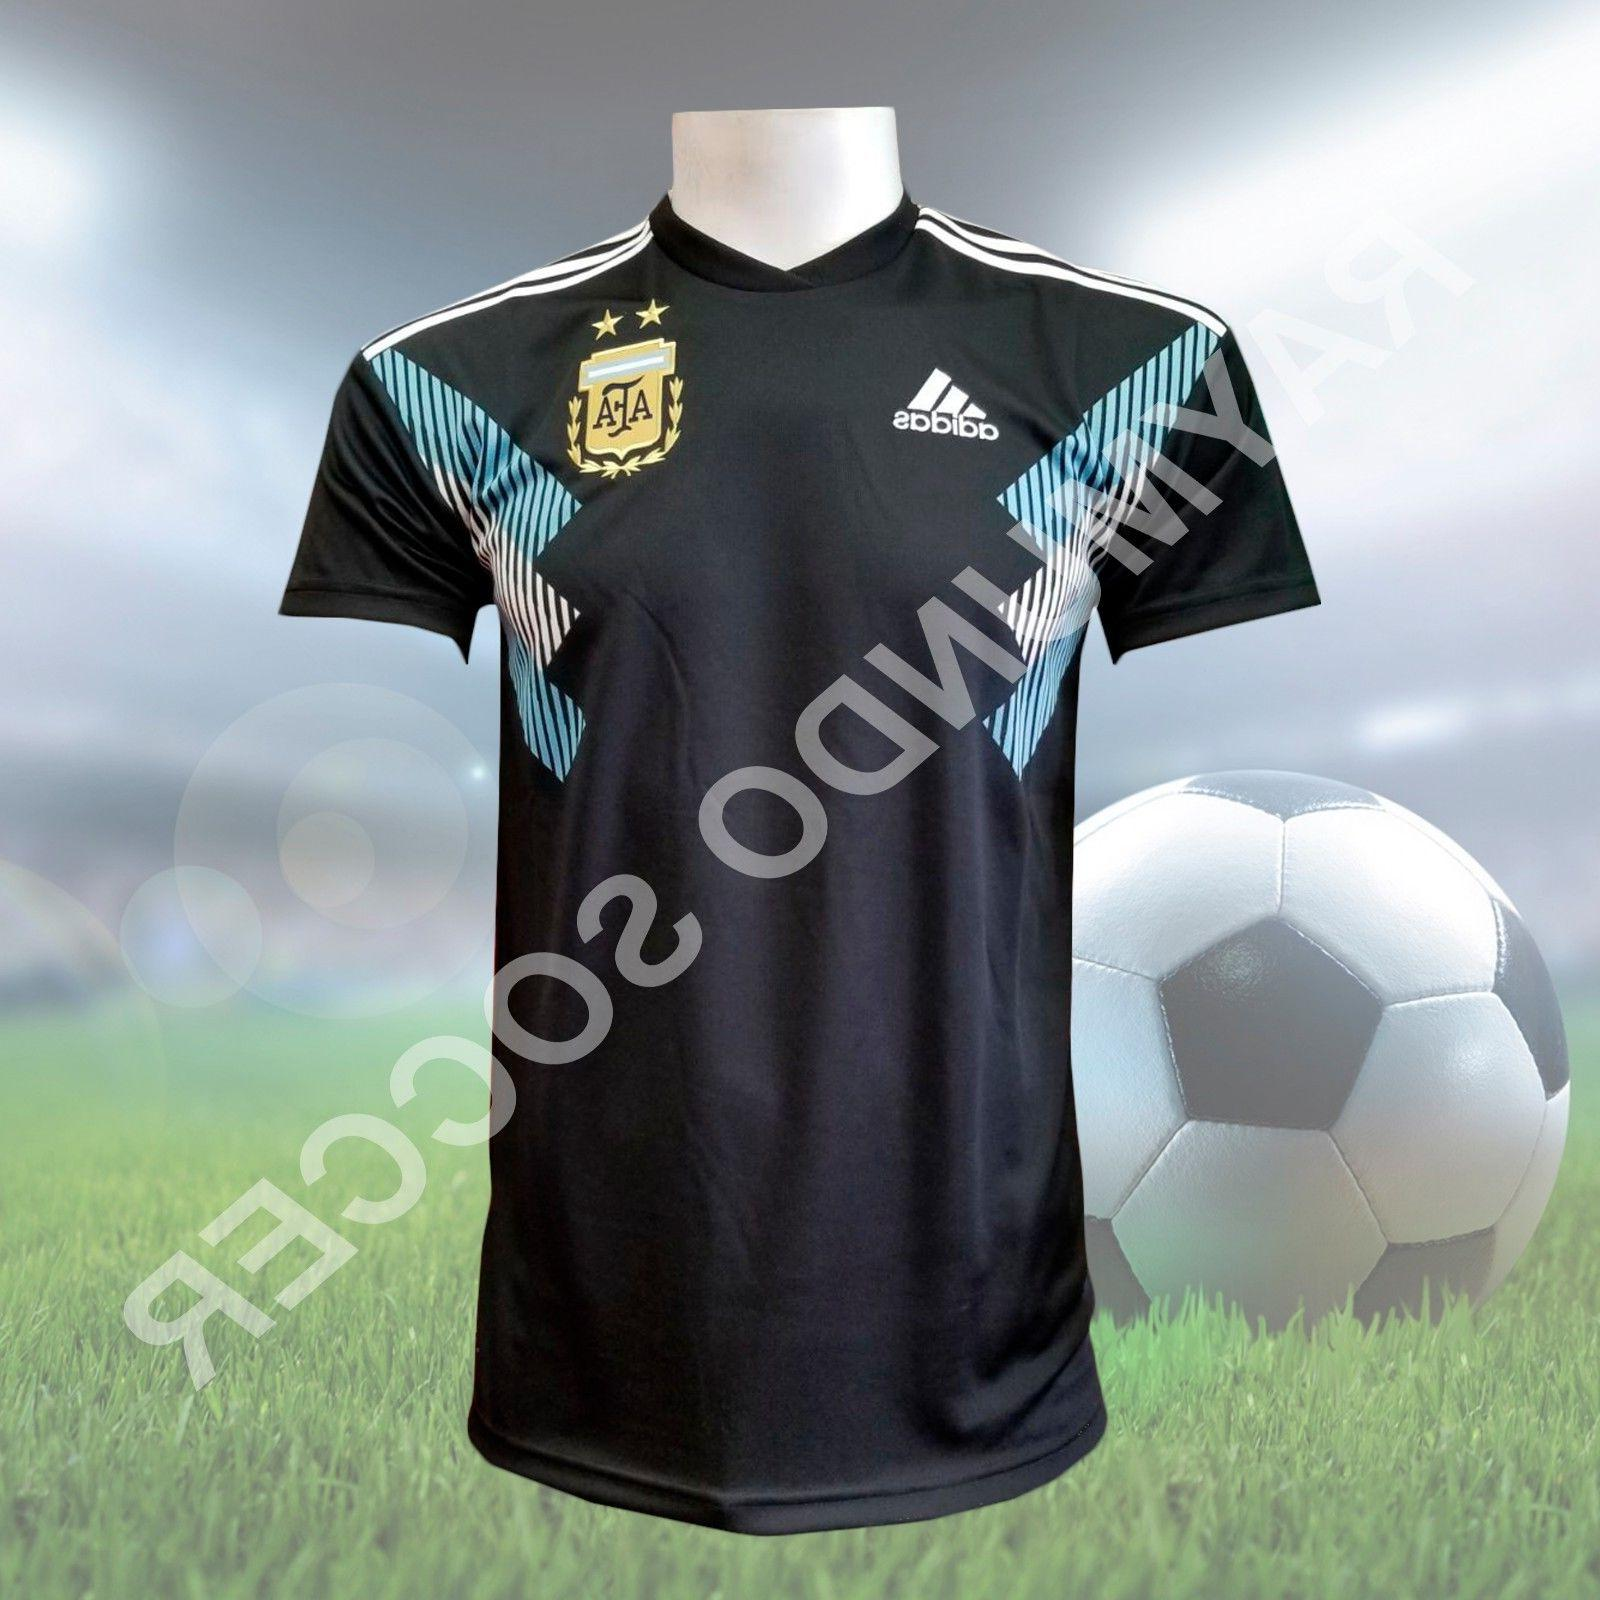 argentina authentic 2018 away jersey black clear